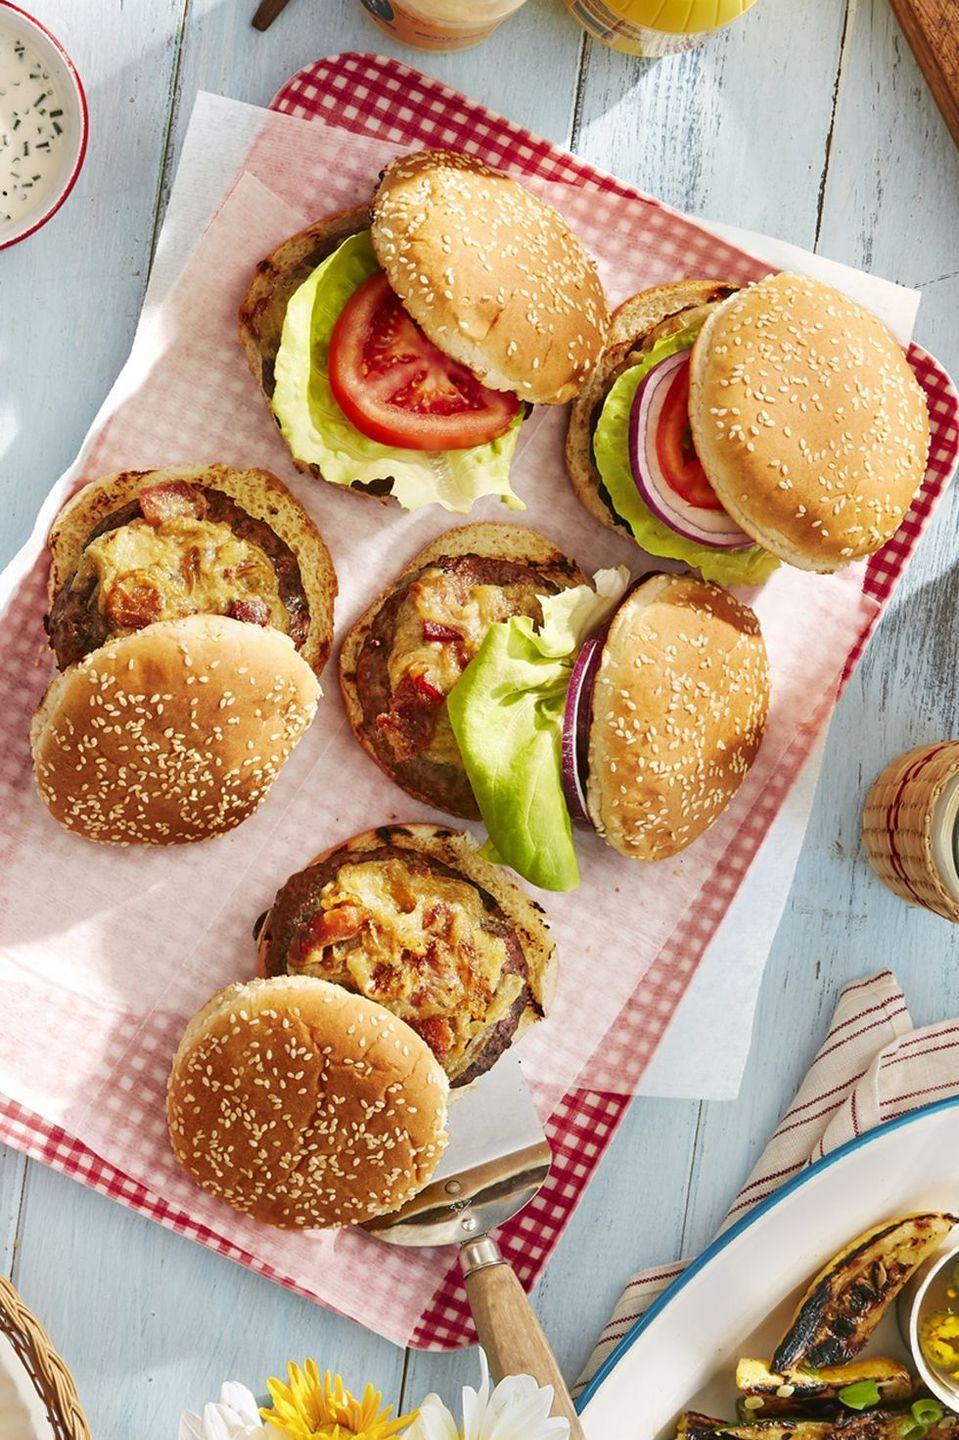 "<p>Basting beefy burgers with Worcestershire sauce gives them even more depth of flavor.</p><p><em><a href=""https://www.countryliving.com/food-drinks/a28188362/worcestershire-glazed-burgers-recipe/"" rel=""nofollow noopener"" target=""_blank"" data-ylk=""slk:Get the recipe from Country Living »"" class=""link rapid-noclick-resp"">Get the recipe from Country Living »</a></em></p>"